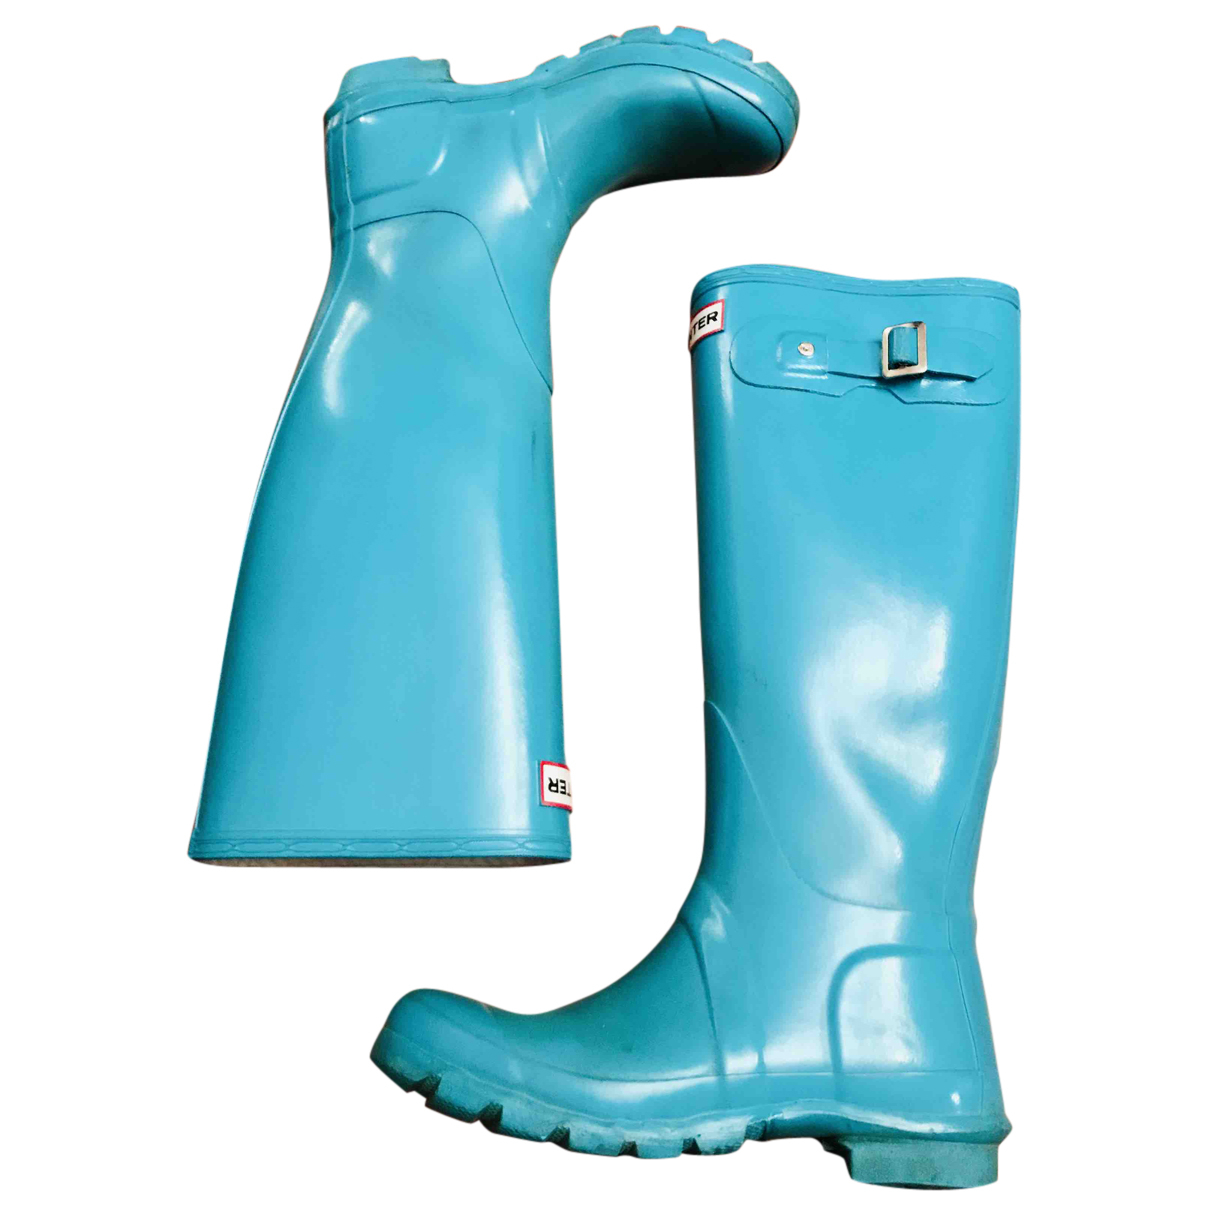 Hunter N Turquoise Rubber Boots for Women 36 EU